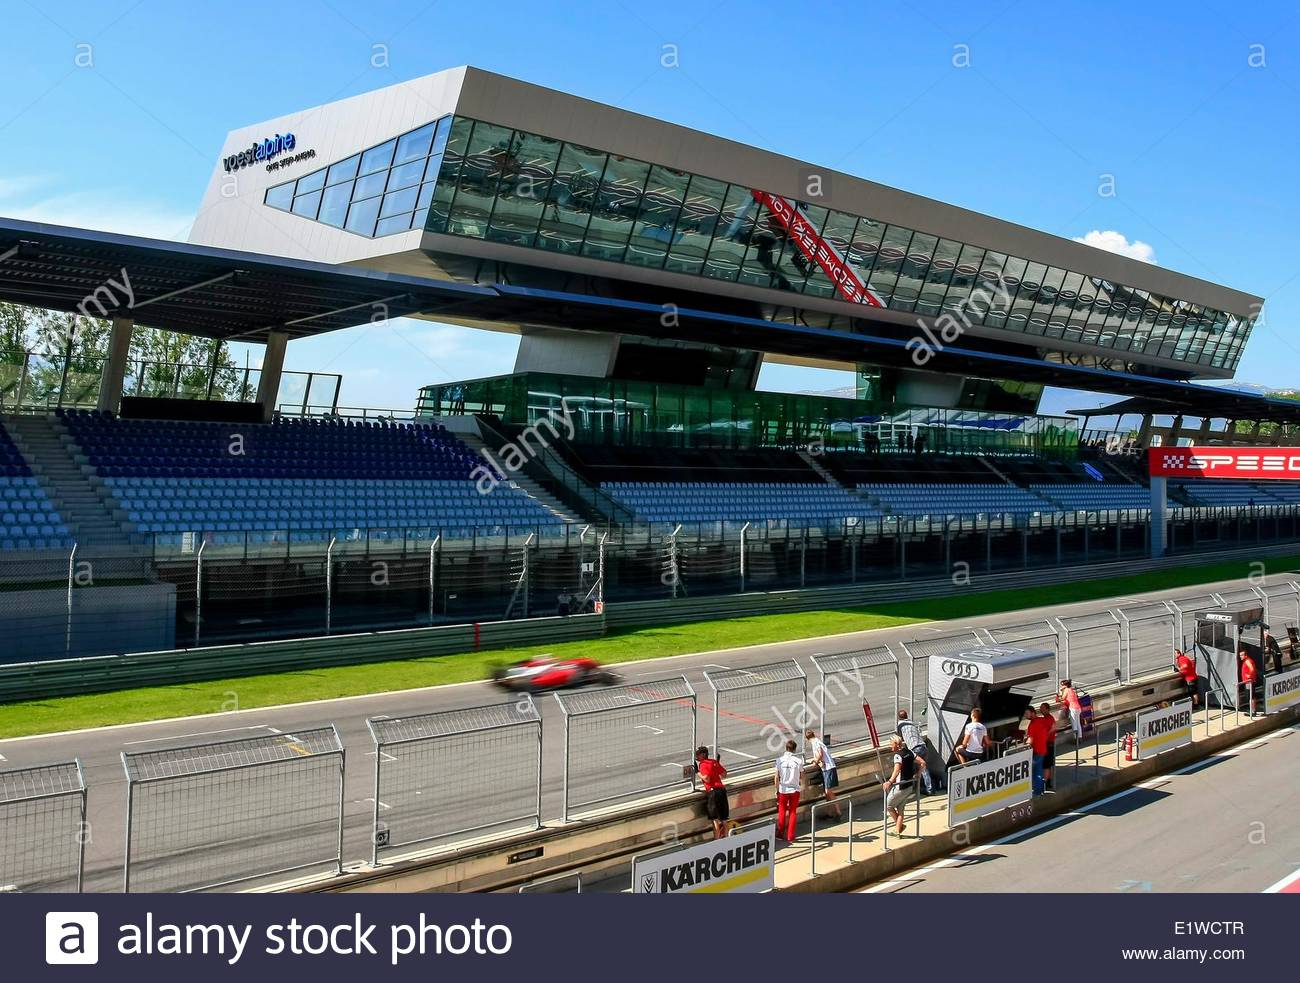 stock photo epa04243751 view of the voestalpine wing during the adac gt masters race at the red bull ring race track in spielberg austria 07 june 2014 austria view red bull